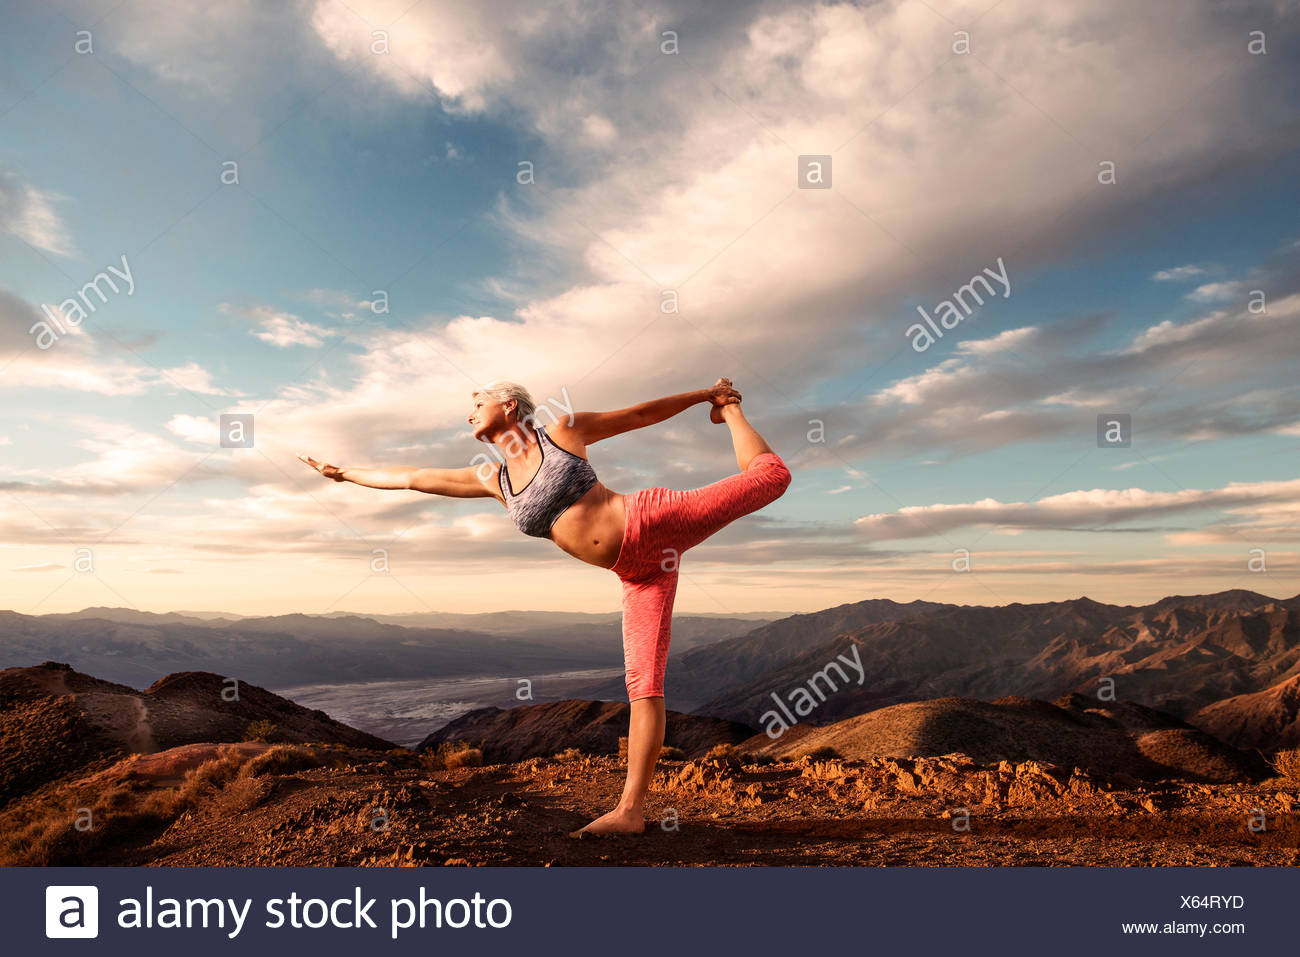 Senior woman doing yoga pose on top of mountain at sunset with landscape and desert valley below. - Stock Image